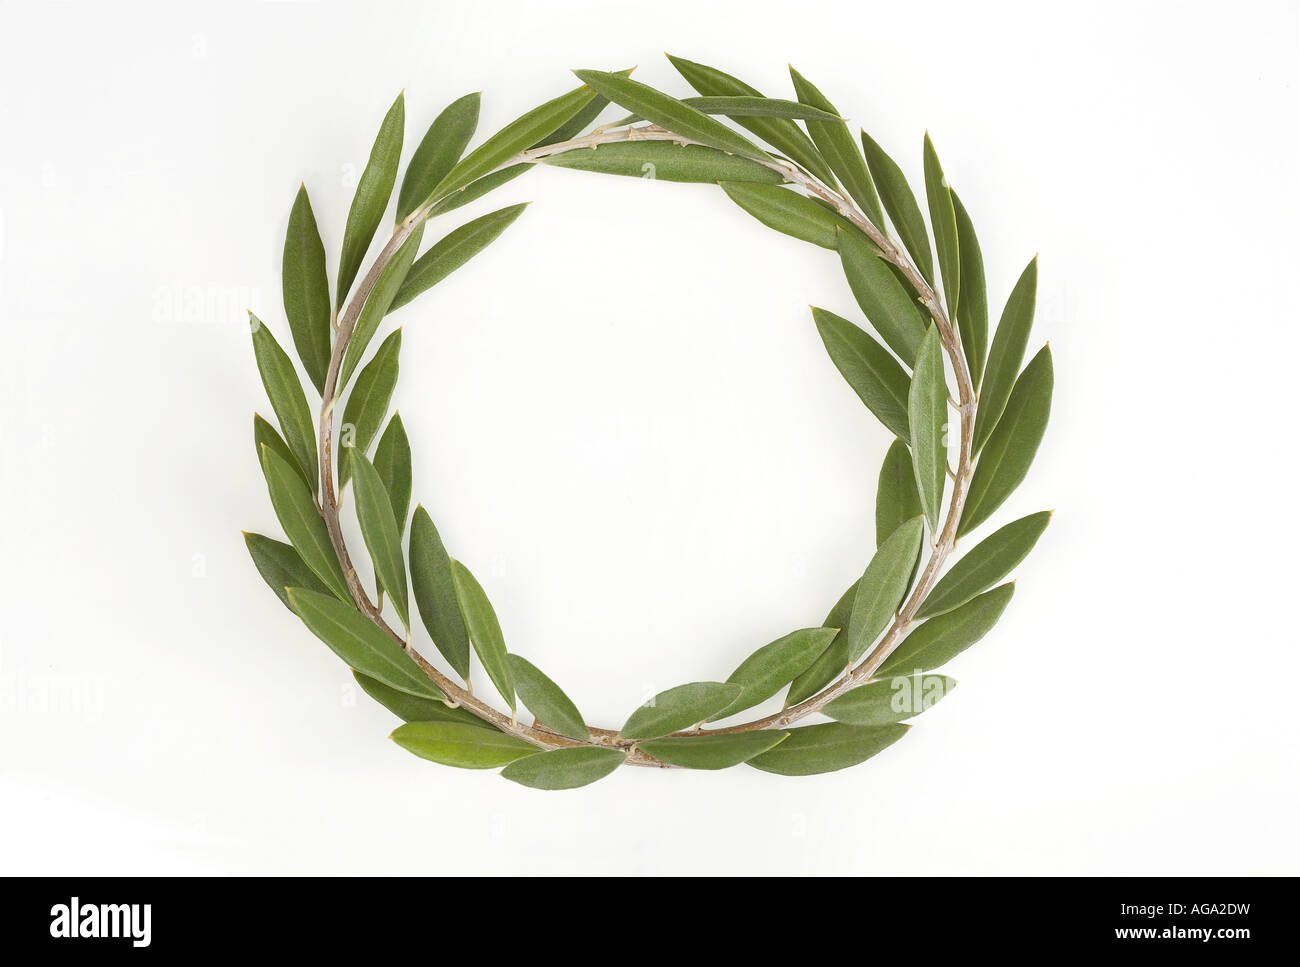 Wreath from olive tree - Stock Image